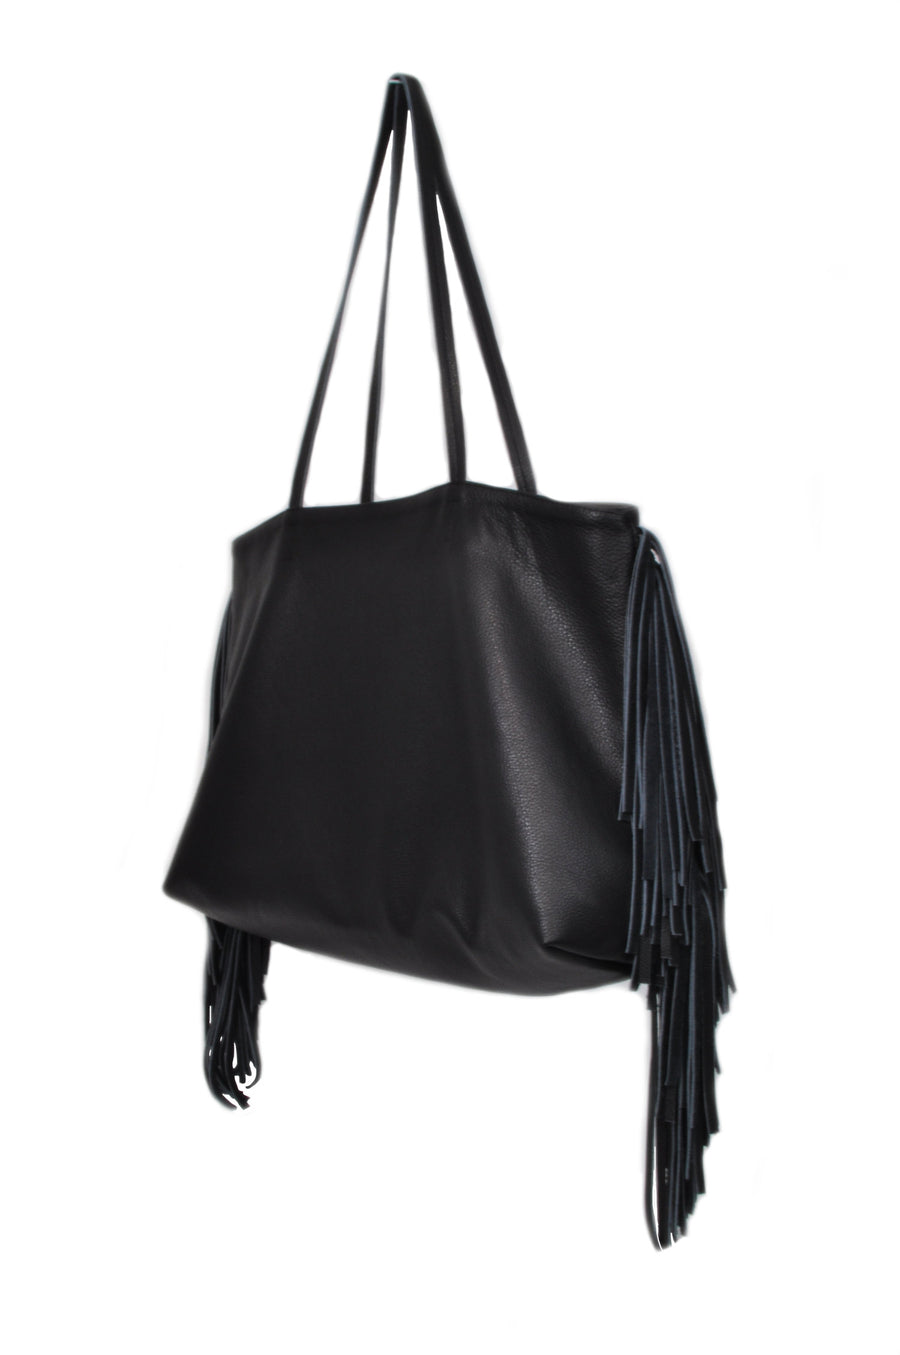 Leather Fringe Tote Black - Positive Elements